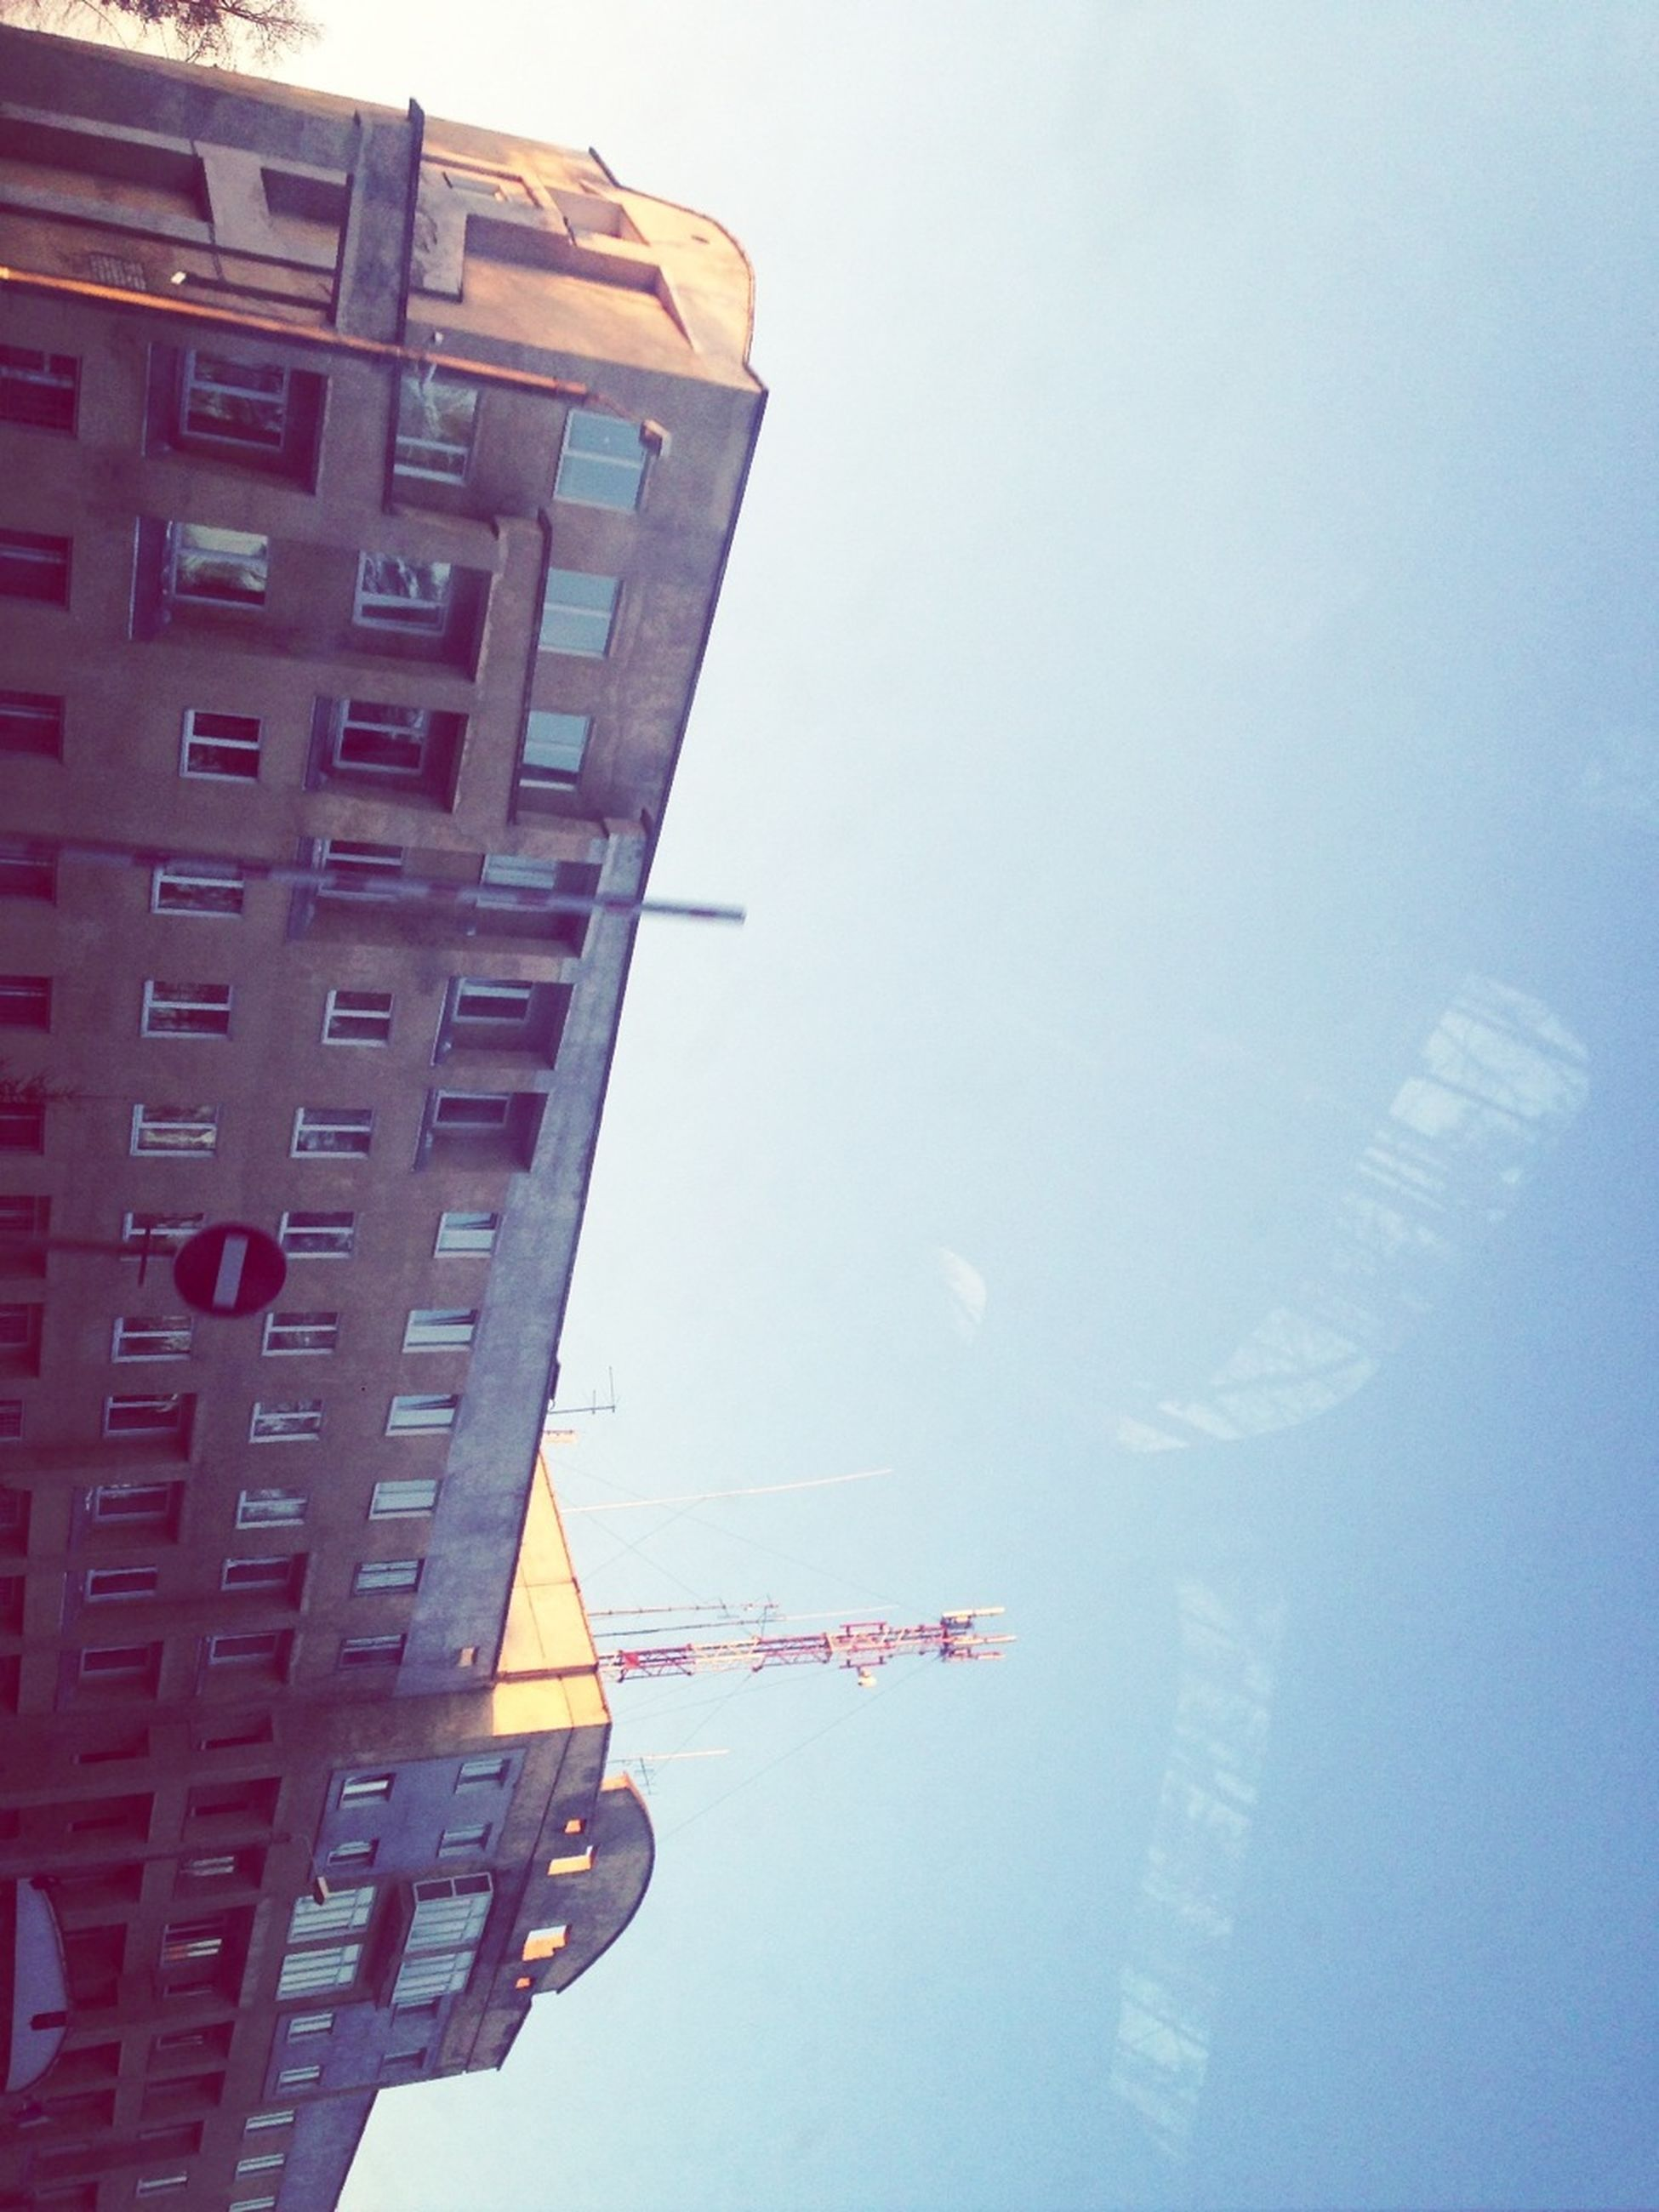 architecture, building exterior, built structure, city, low angle view, sky, tower, building, tall - high, clear sky, skyscraper, modern, office building, travel, reflection, outdoors, transportation, city life, capital cities, travel destinations